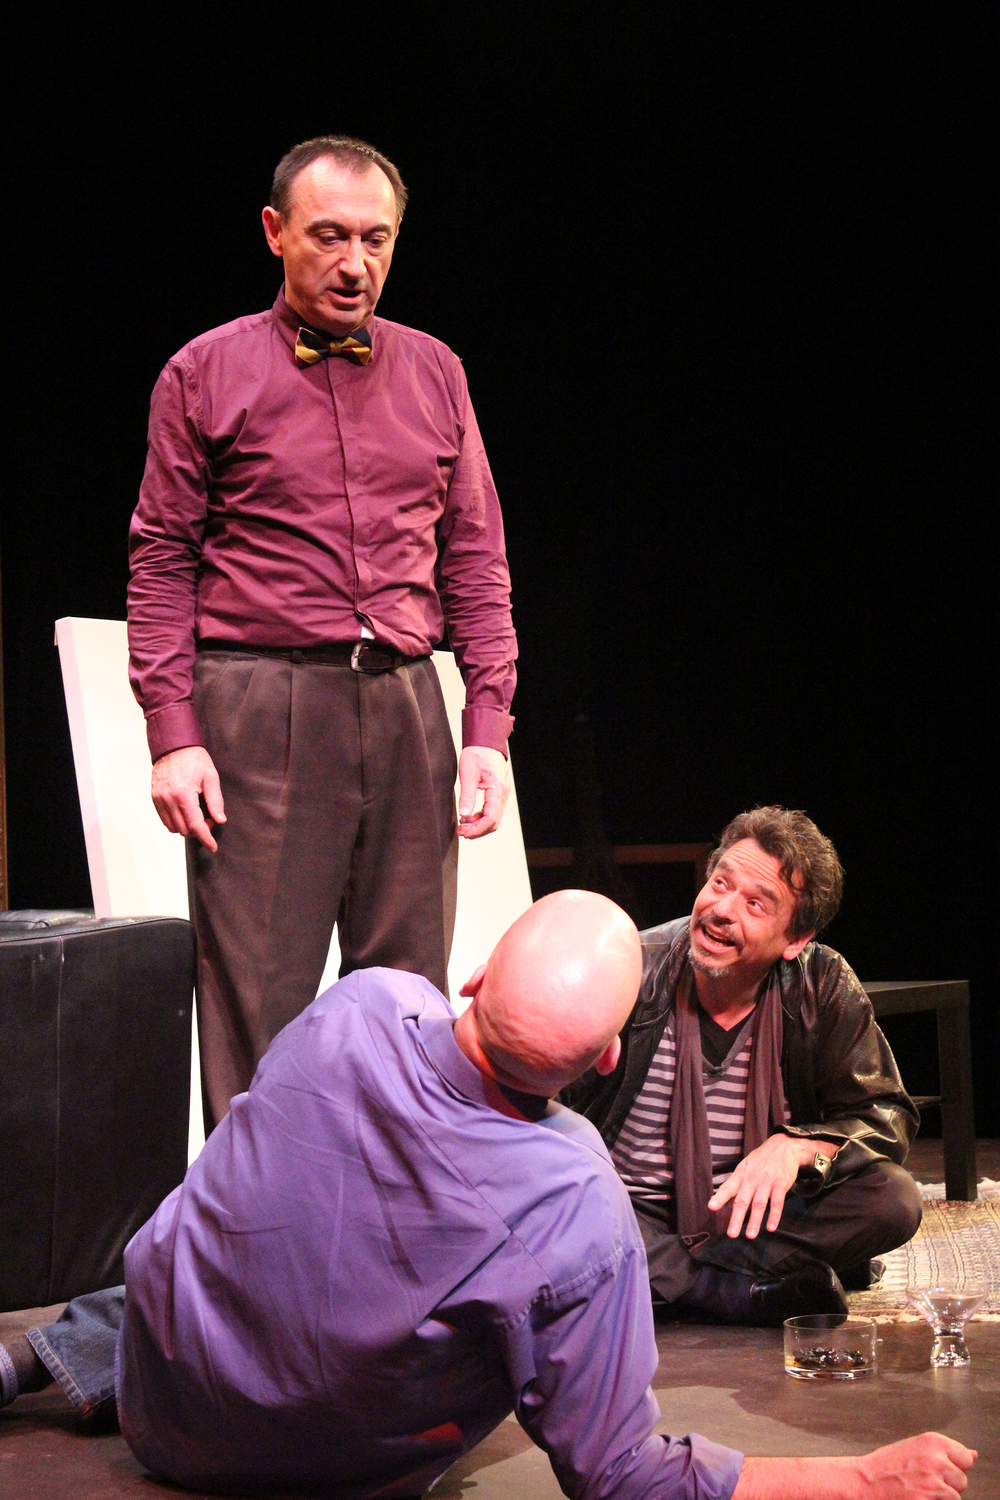 (L to R) Serge (Robert Marinier), Yvan (Andy Massingham) and Marc (David Frisch) contemplate friendship and well, art, in the comedy,   'Art'   Photography by Julie Le Gal